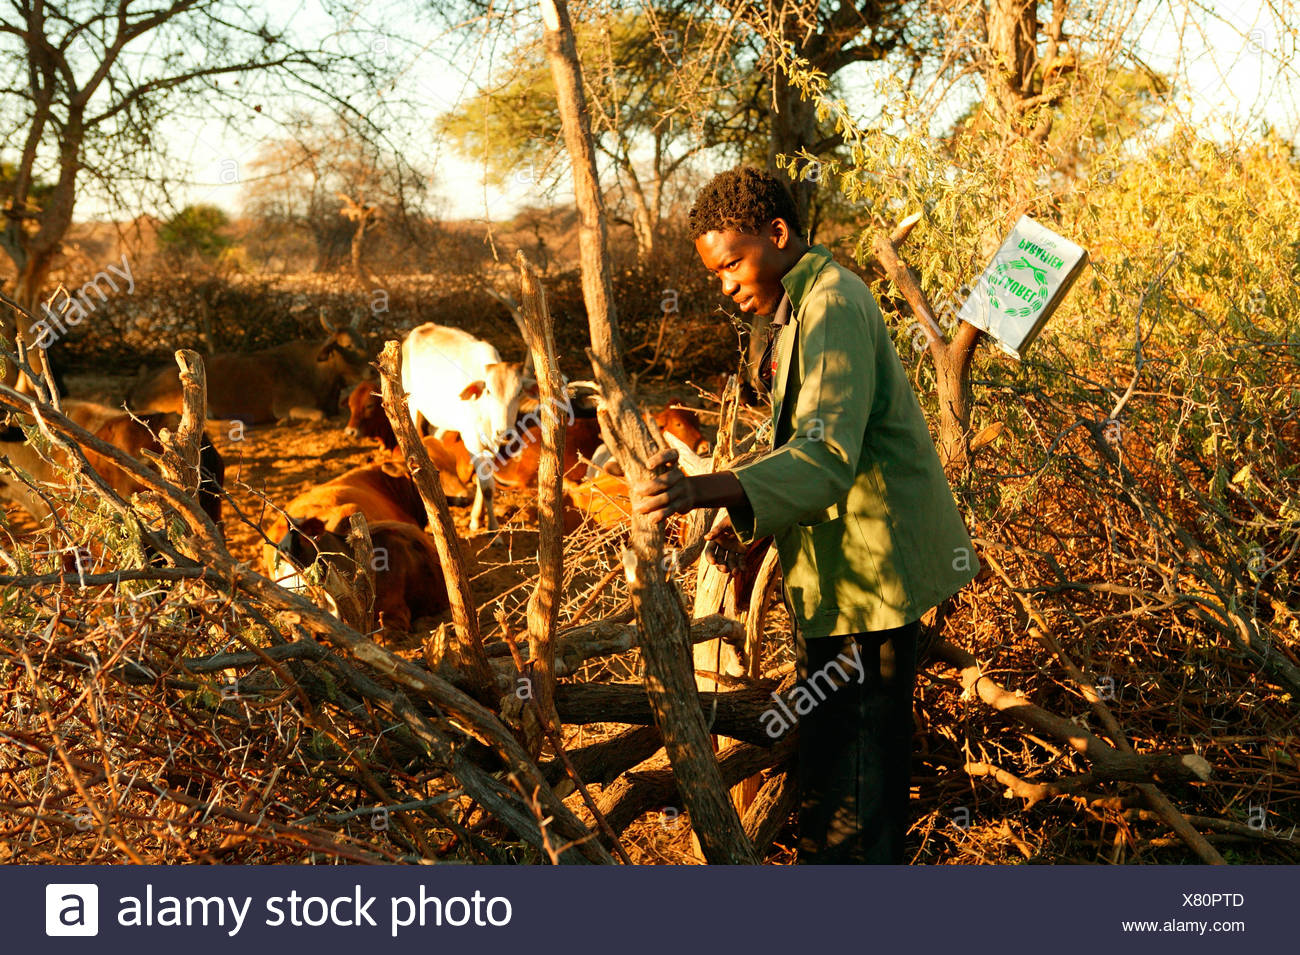 Man closing the cattle kraal, Cattlepost Bothatoga, Botswana, Africa - Stock Image